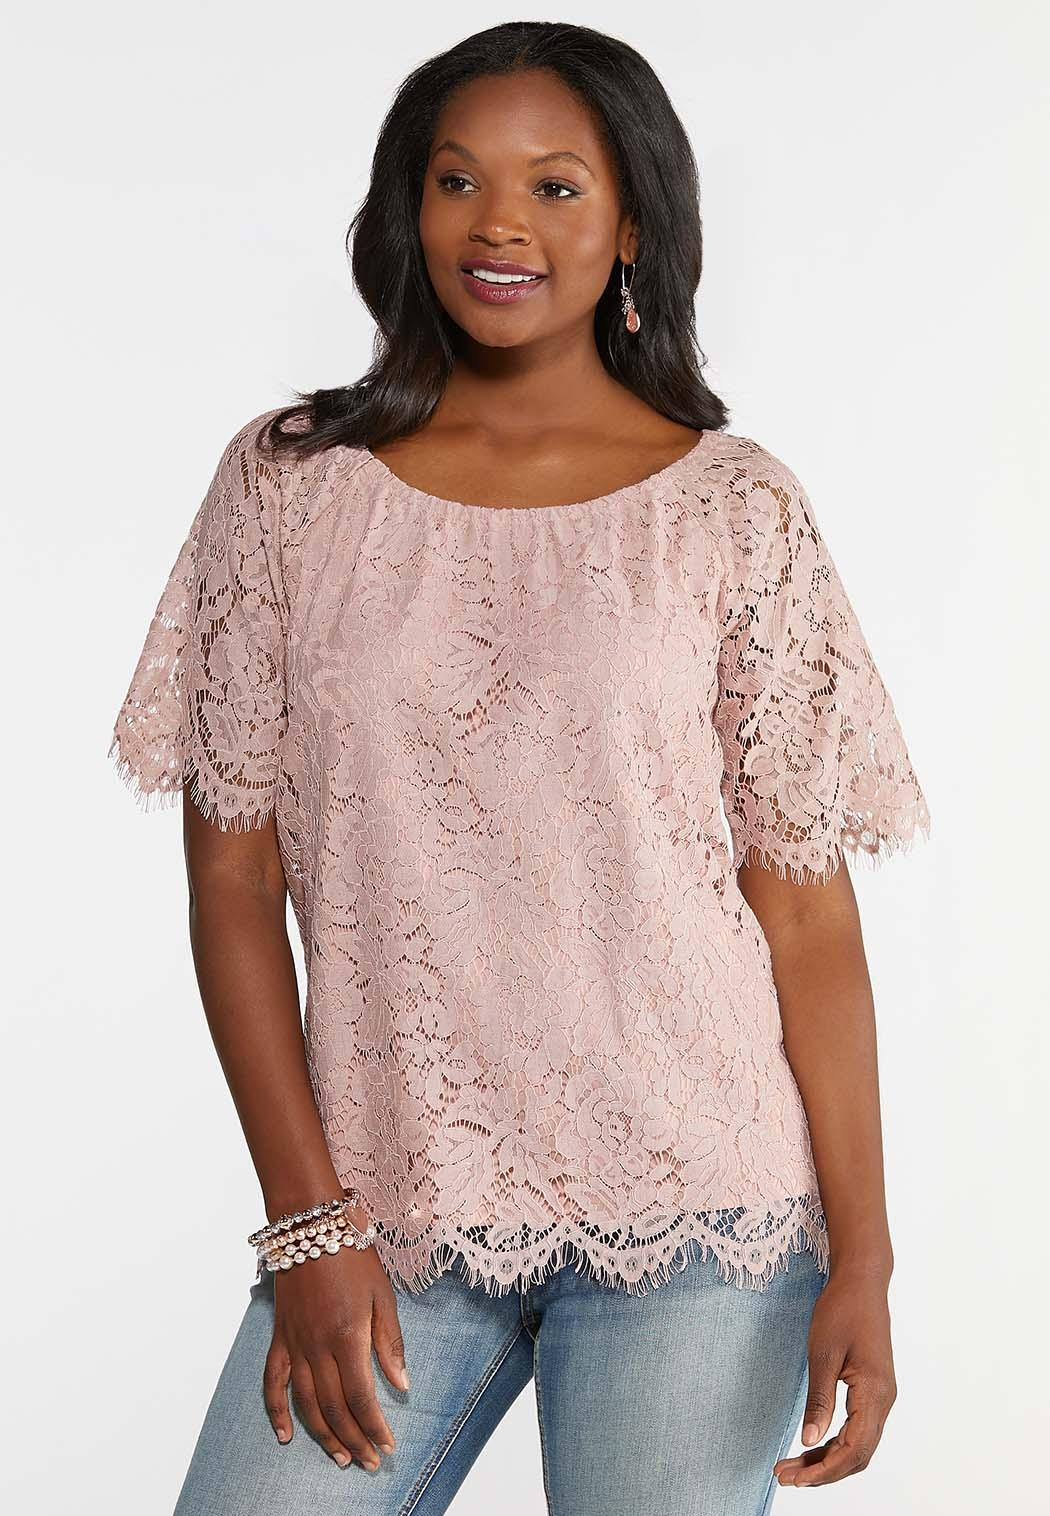 98ed74bb2d779 Vintage Rose Lace Top Tops Cato Fashions